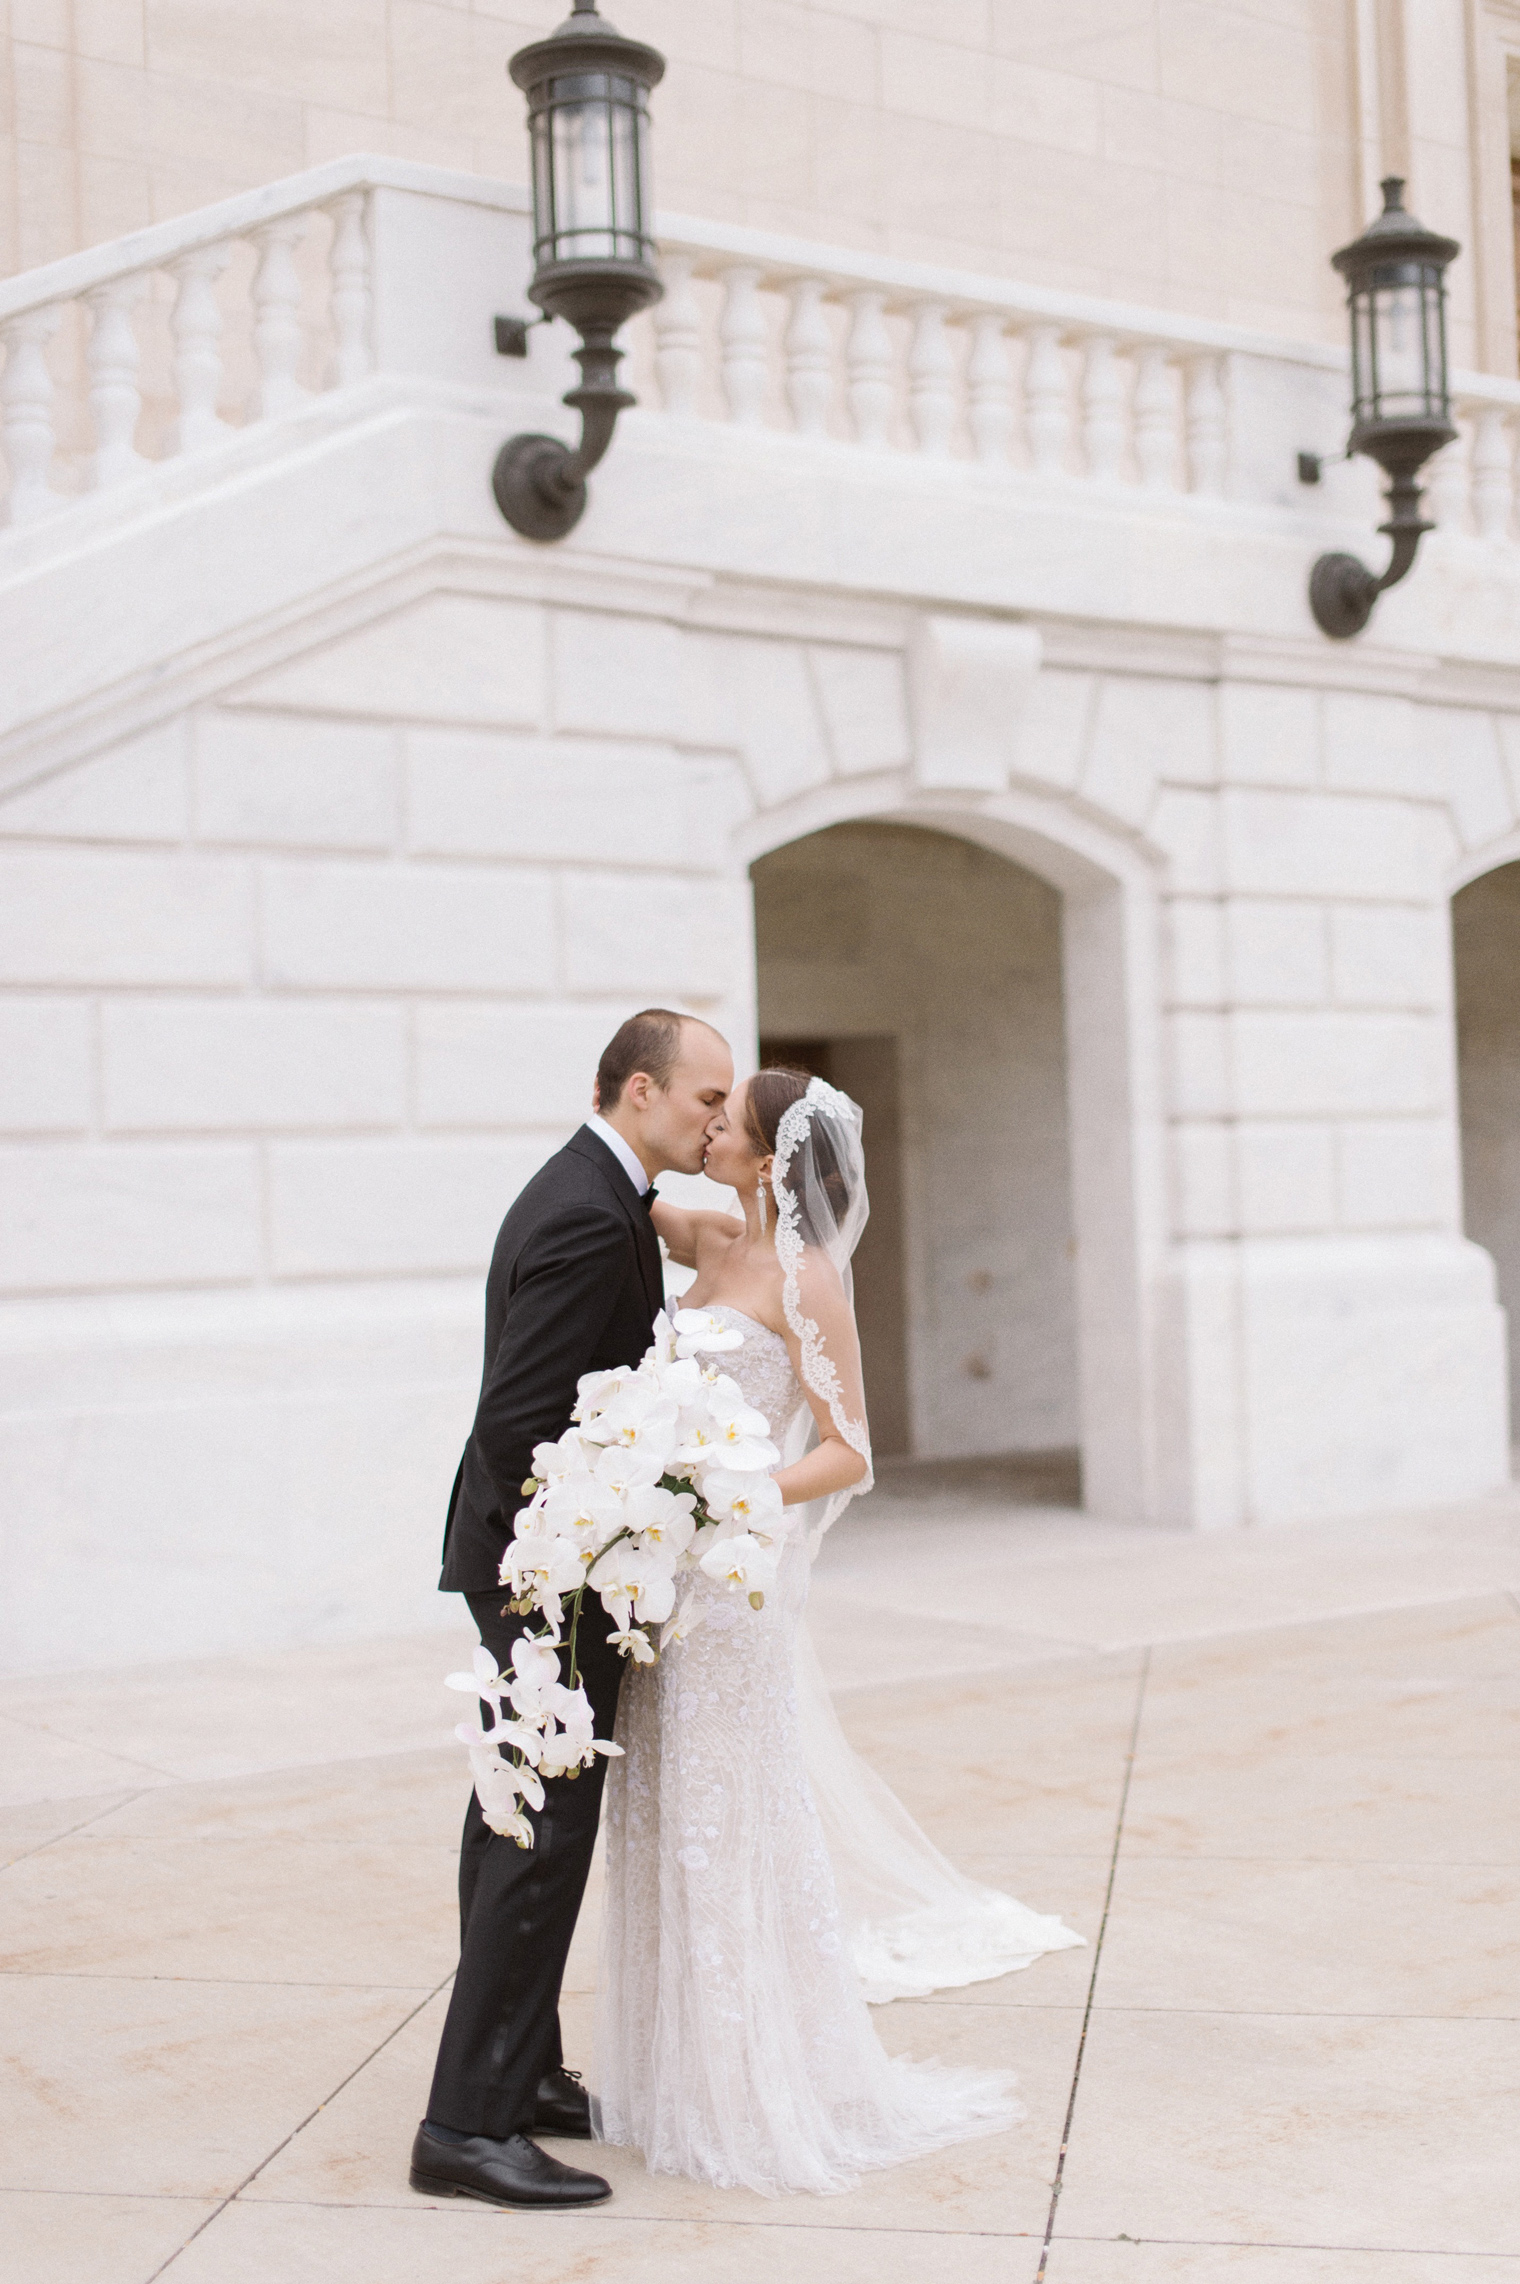 Timeless bride and groom portraits at the Detroit Institute of Arts by Wedding Photographer Heather Jowett.